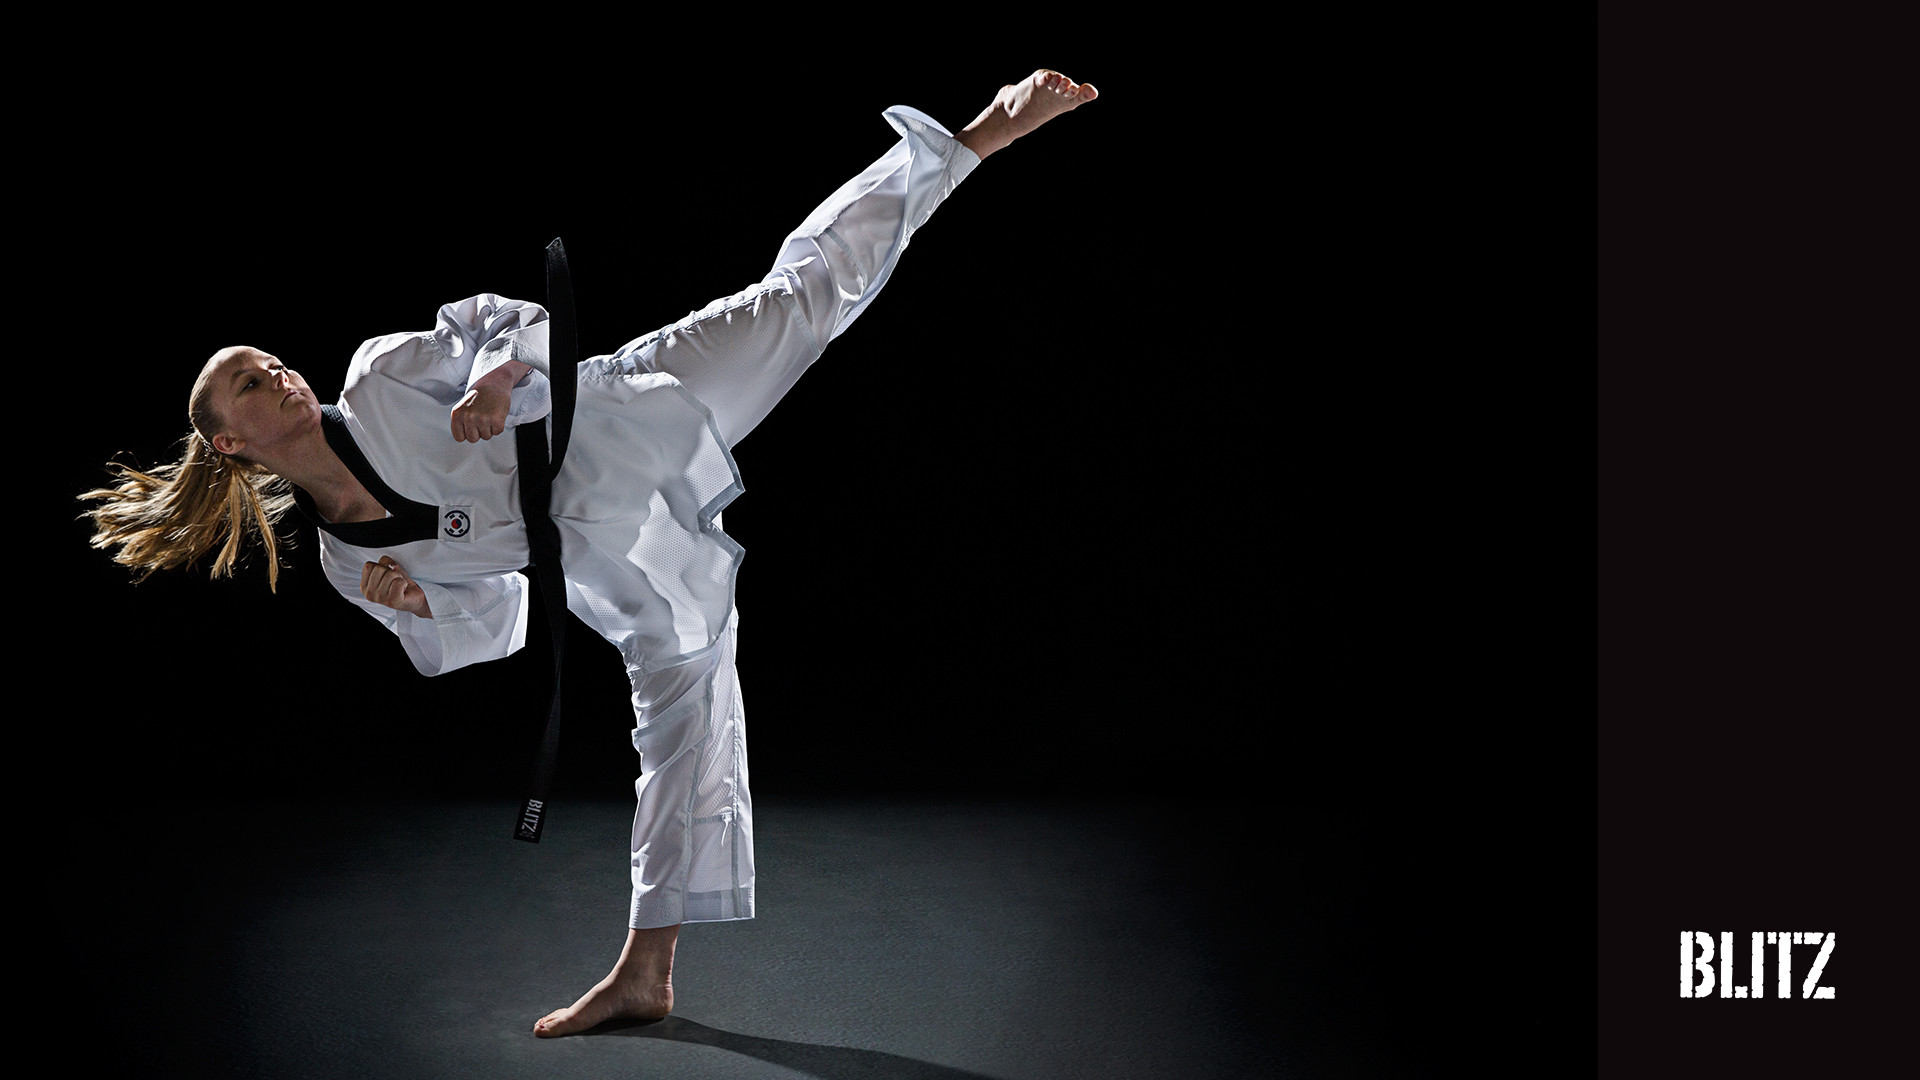 taekwondo wallpapers 183��